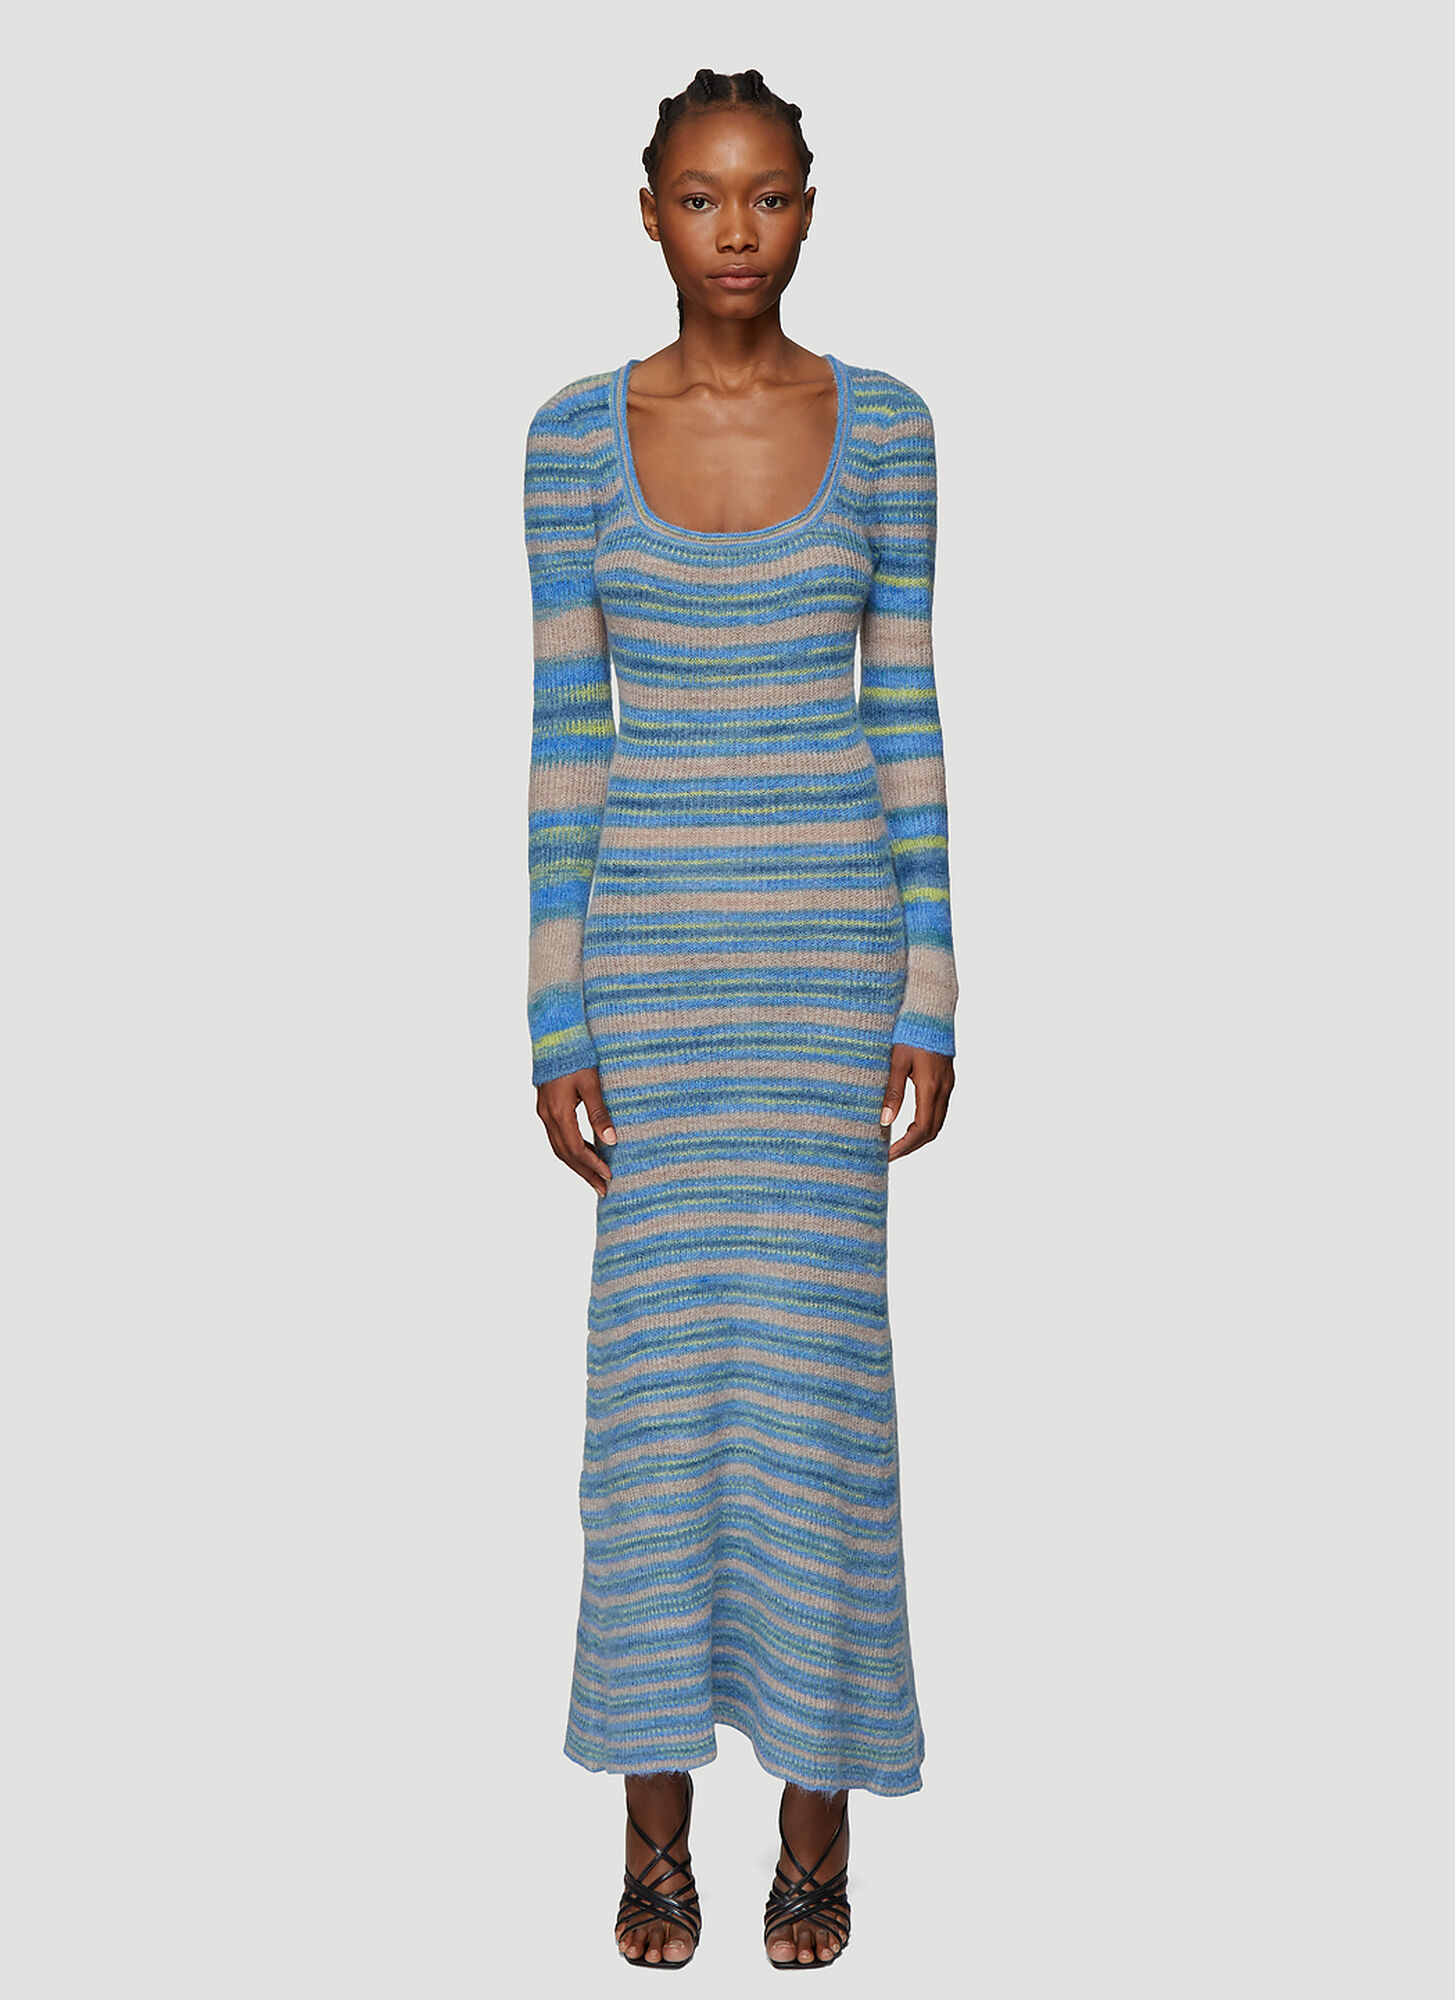 Jacquemus La Robe Perou Stripe Knit Dress in Blue